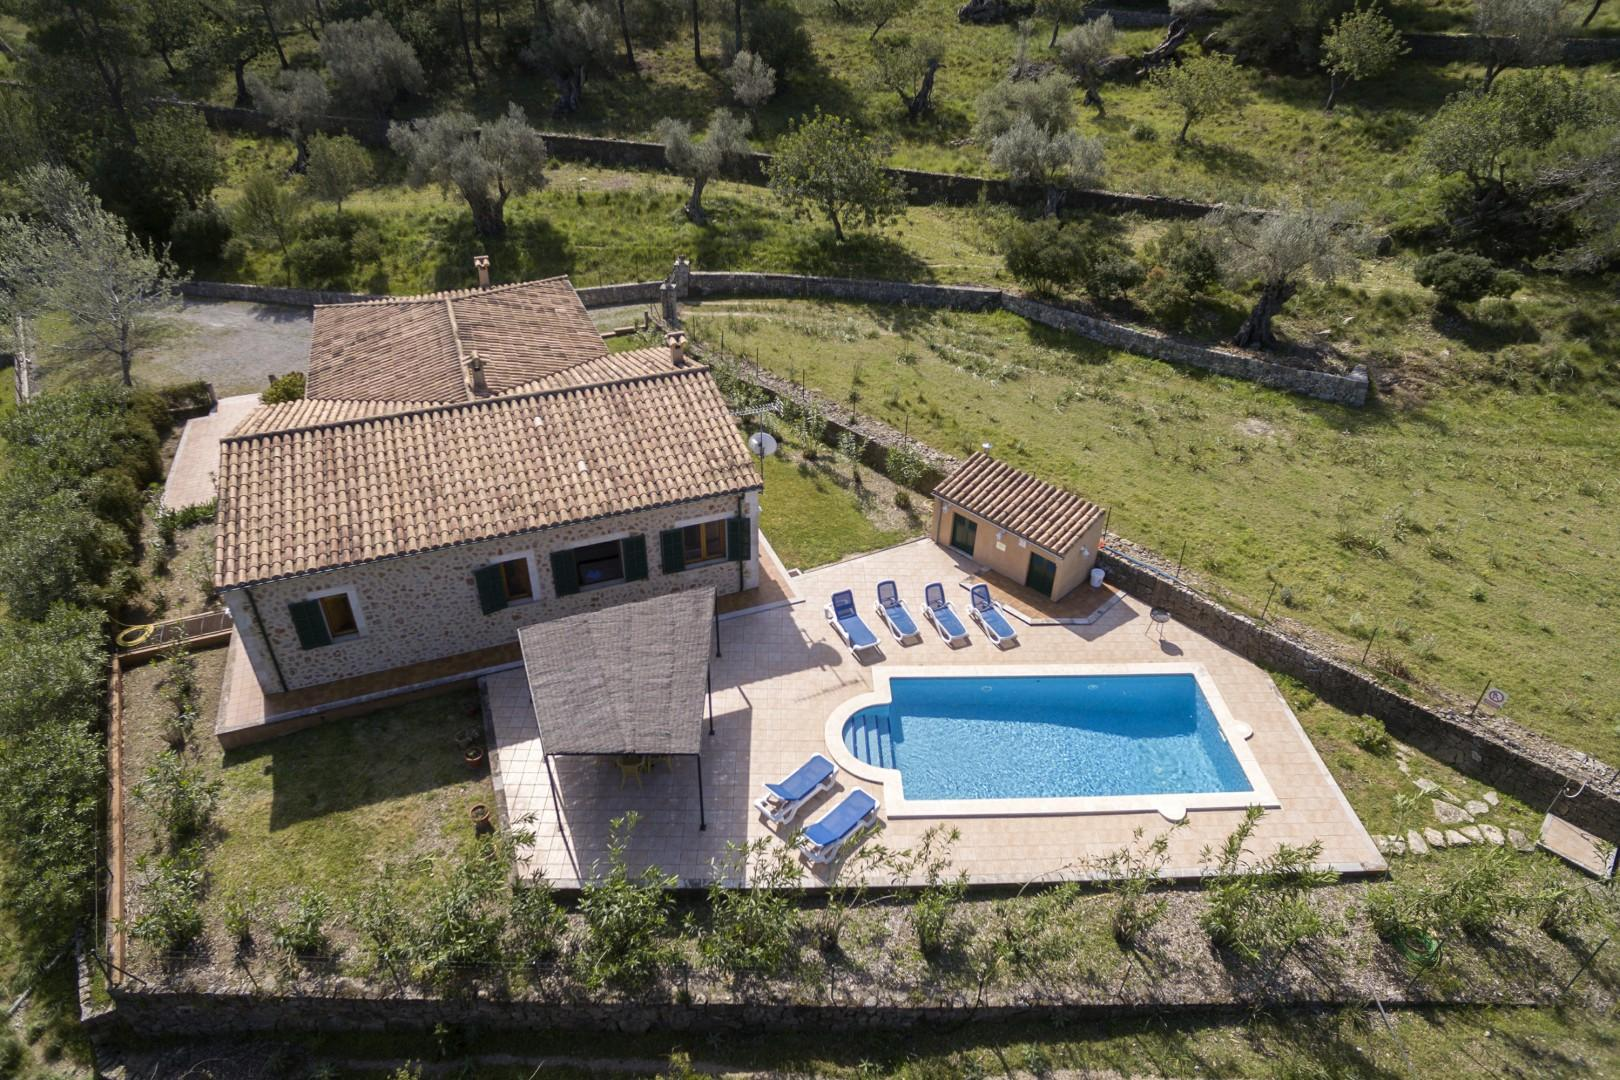 BOSCH- Secluded Finca in the foot of the mountains